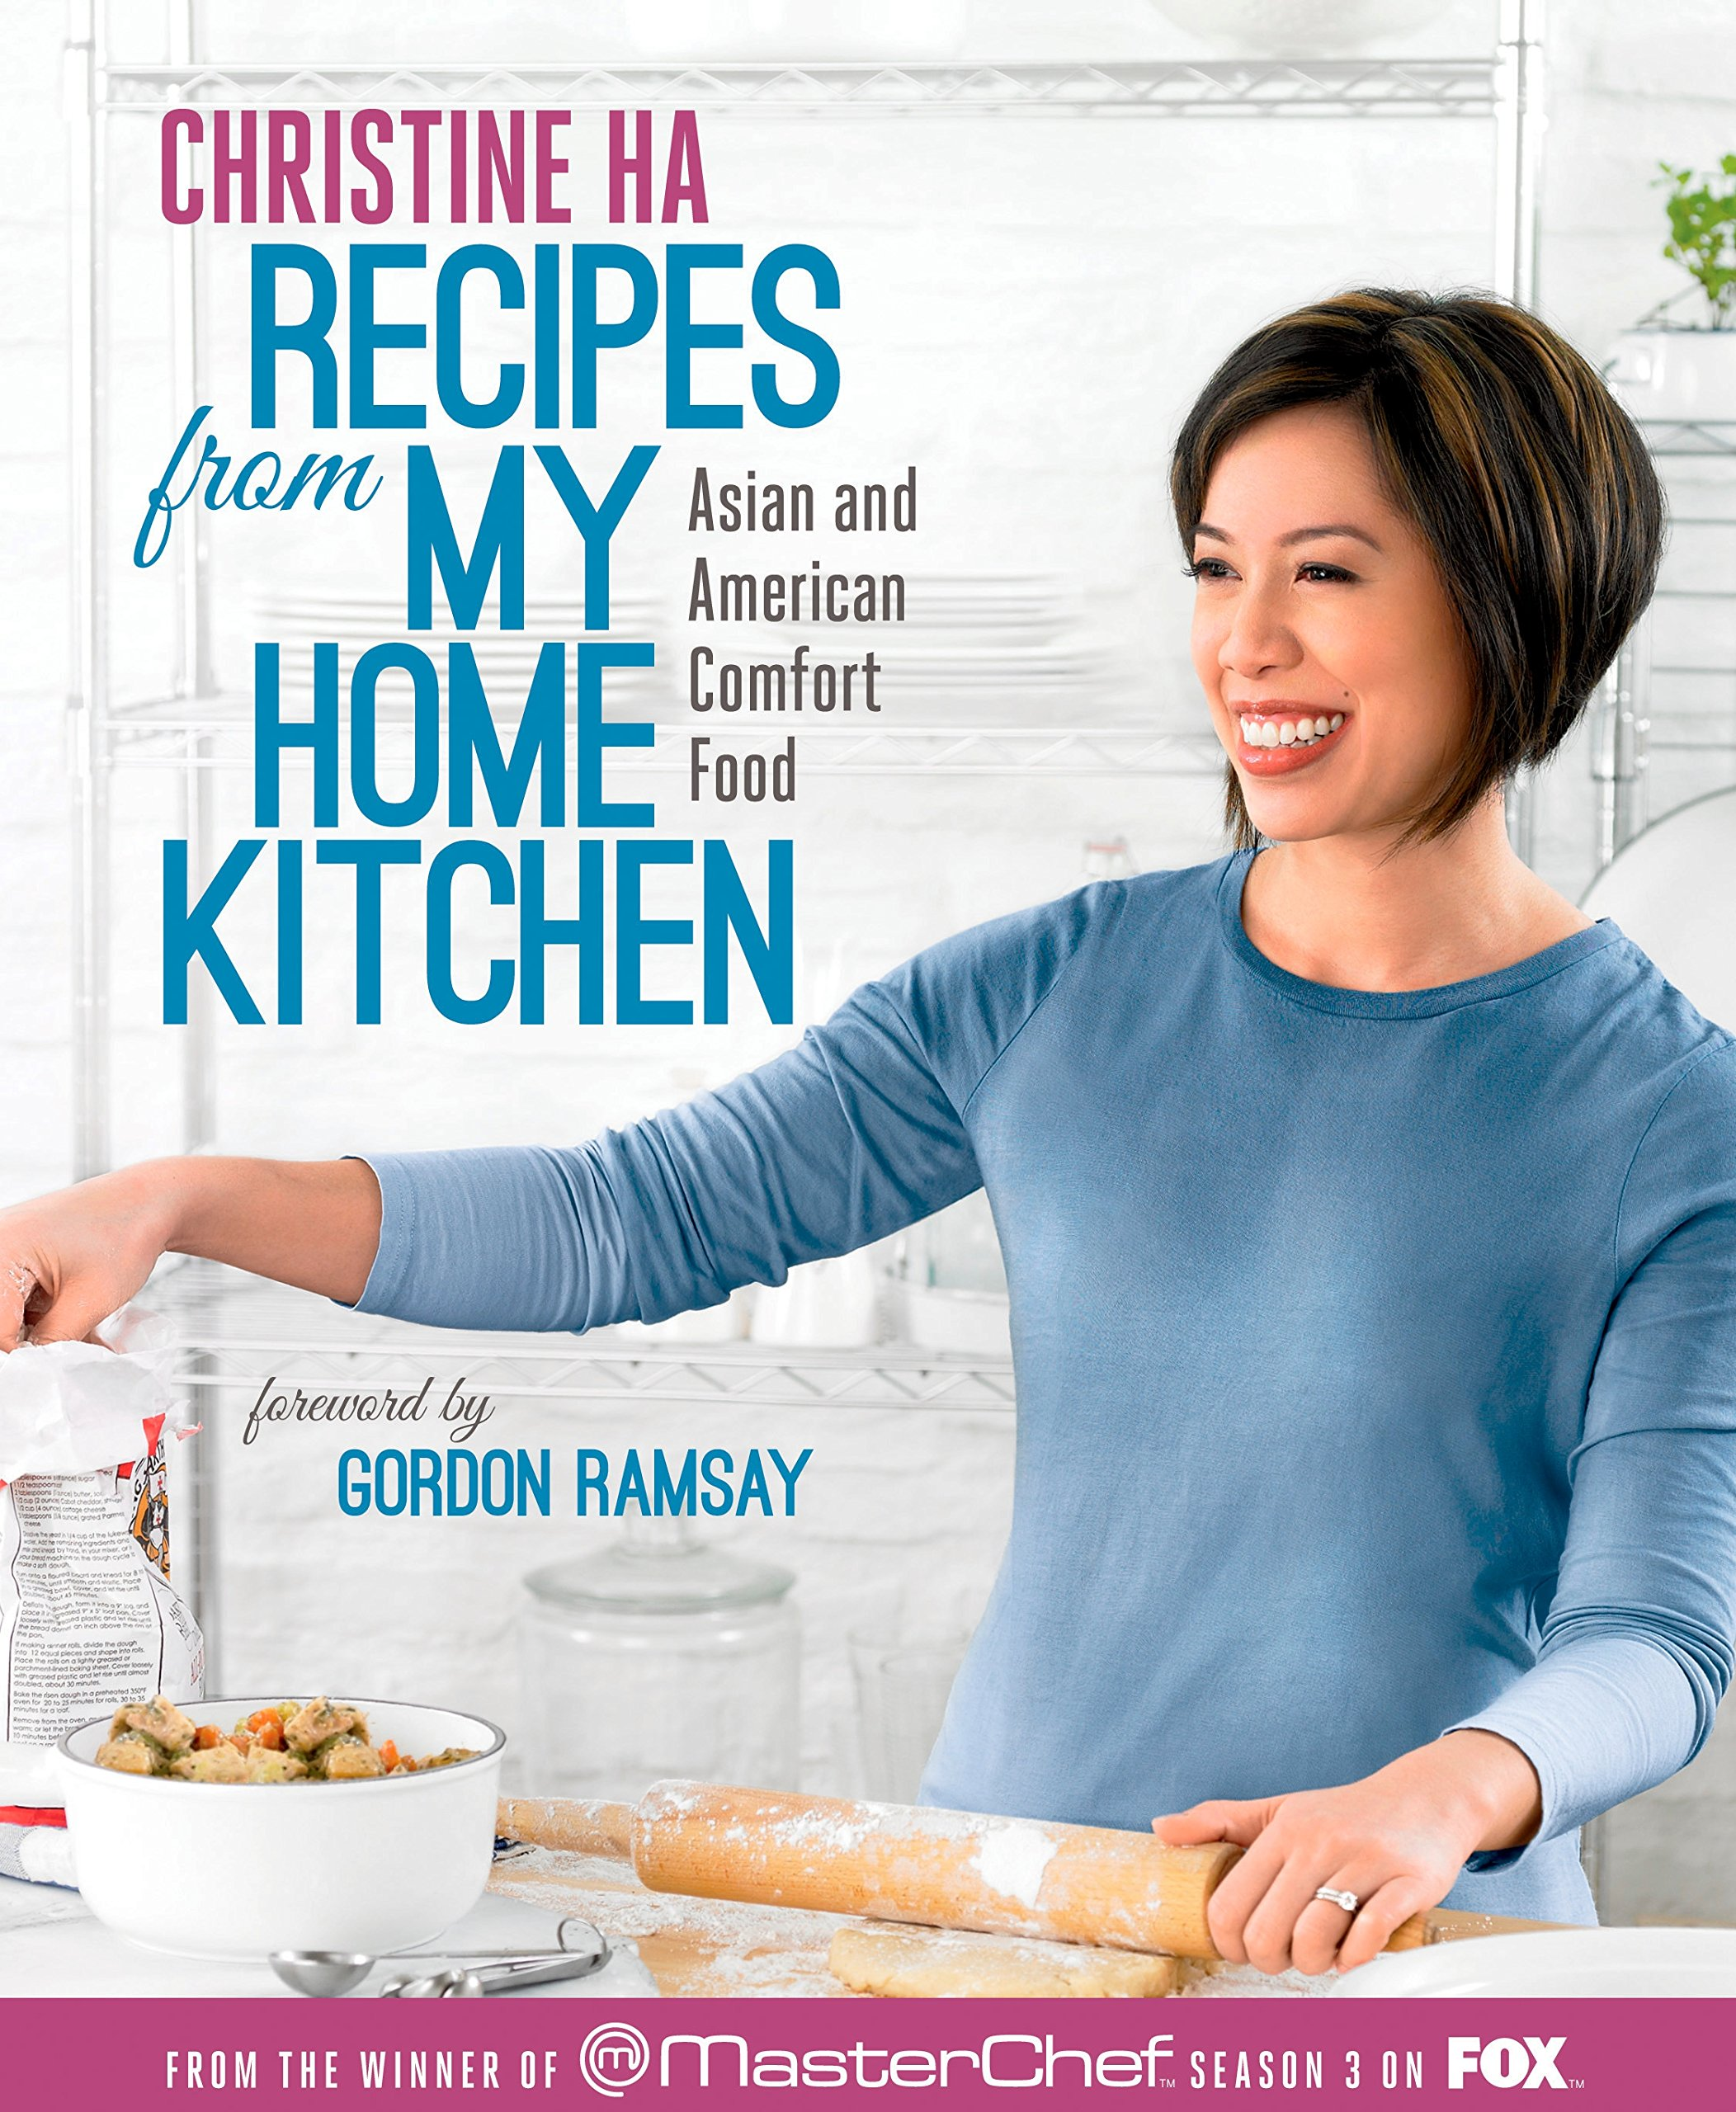 Recipes from My Home Kitchen: Asian and American Comfort Food from the  Winner of MasterChef Season 3 on FOX: Amazon.de: Christine Ha, Gordon  Ramsay: ...